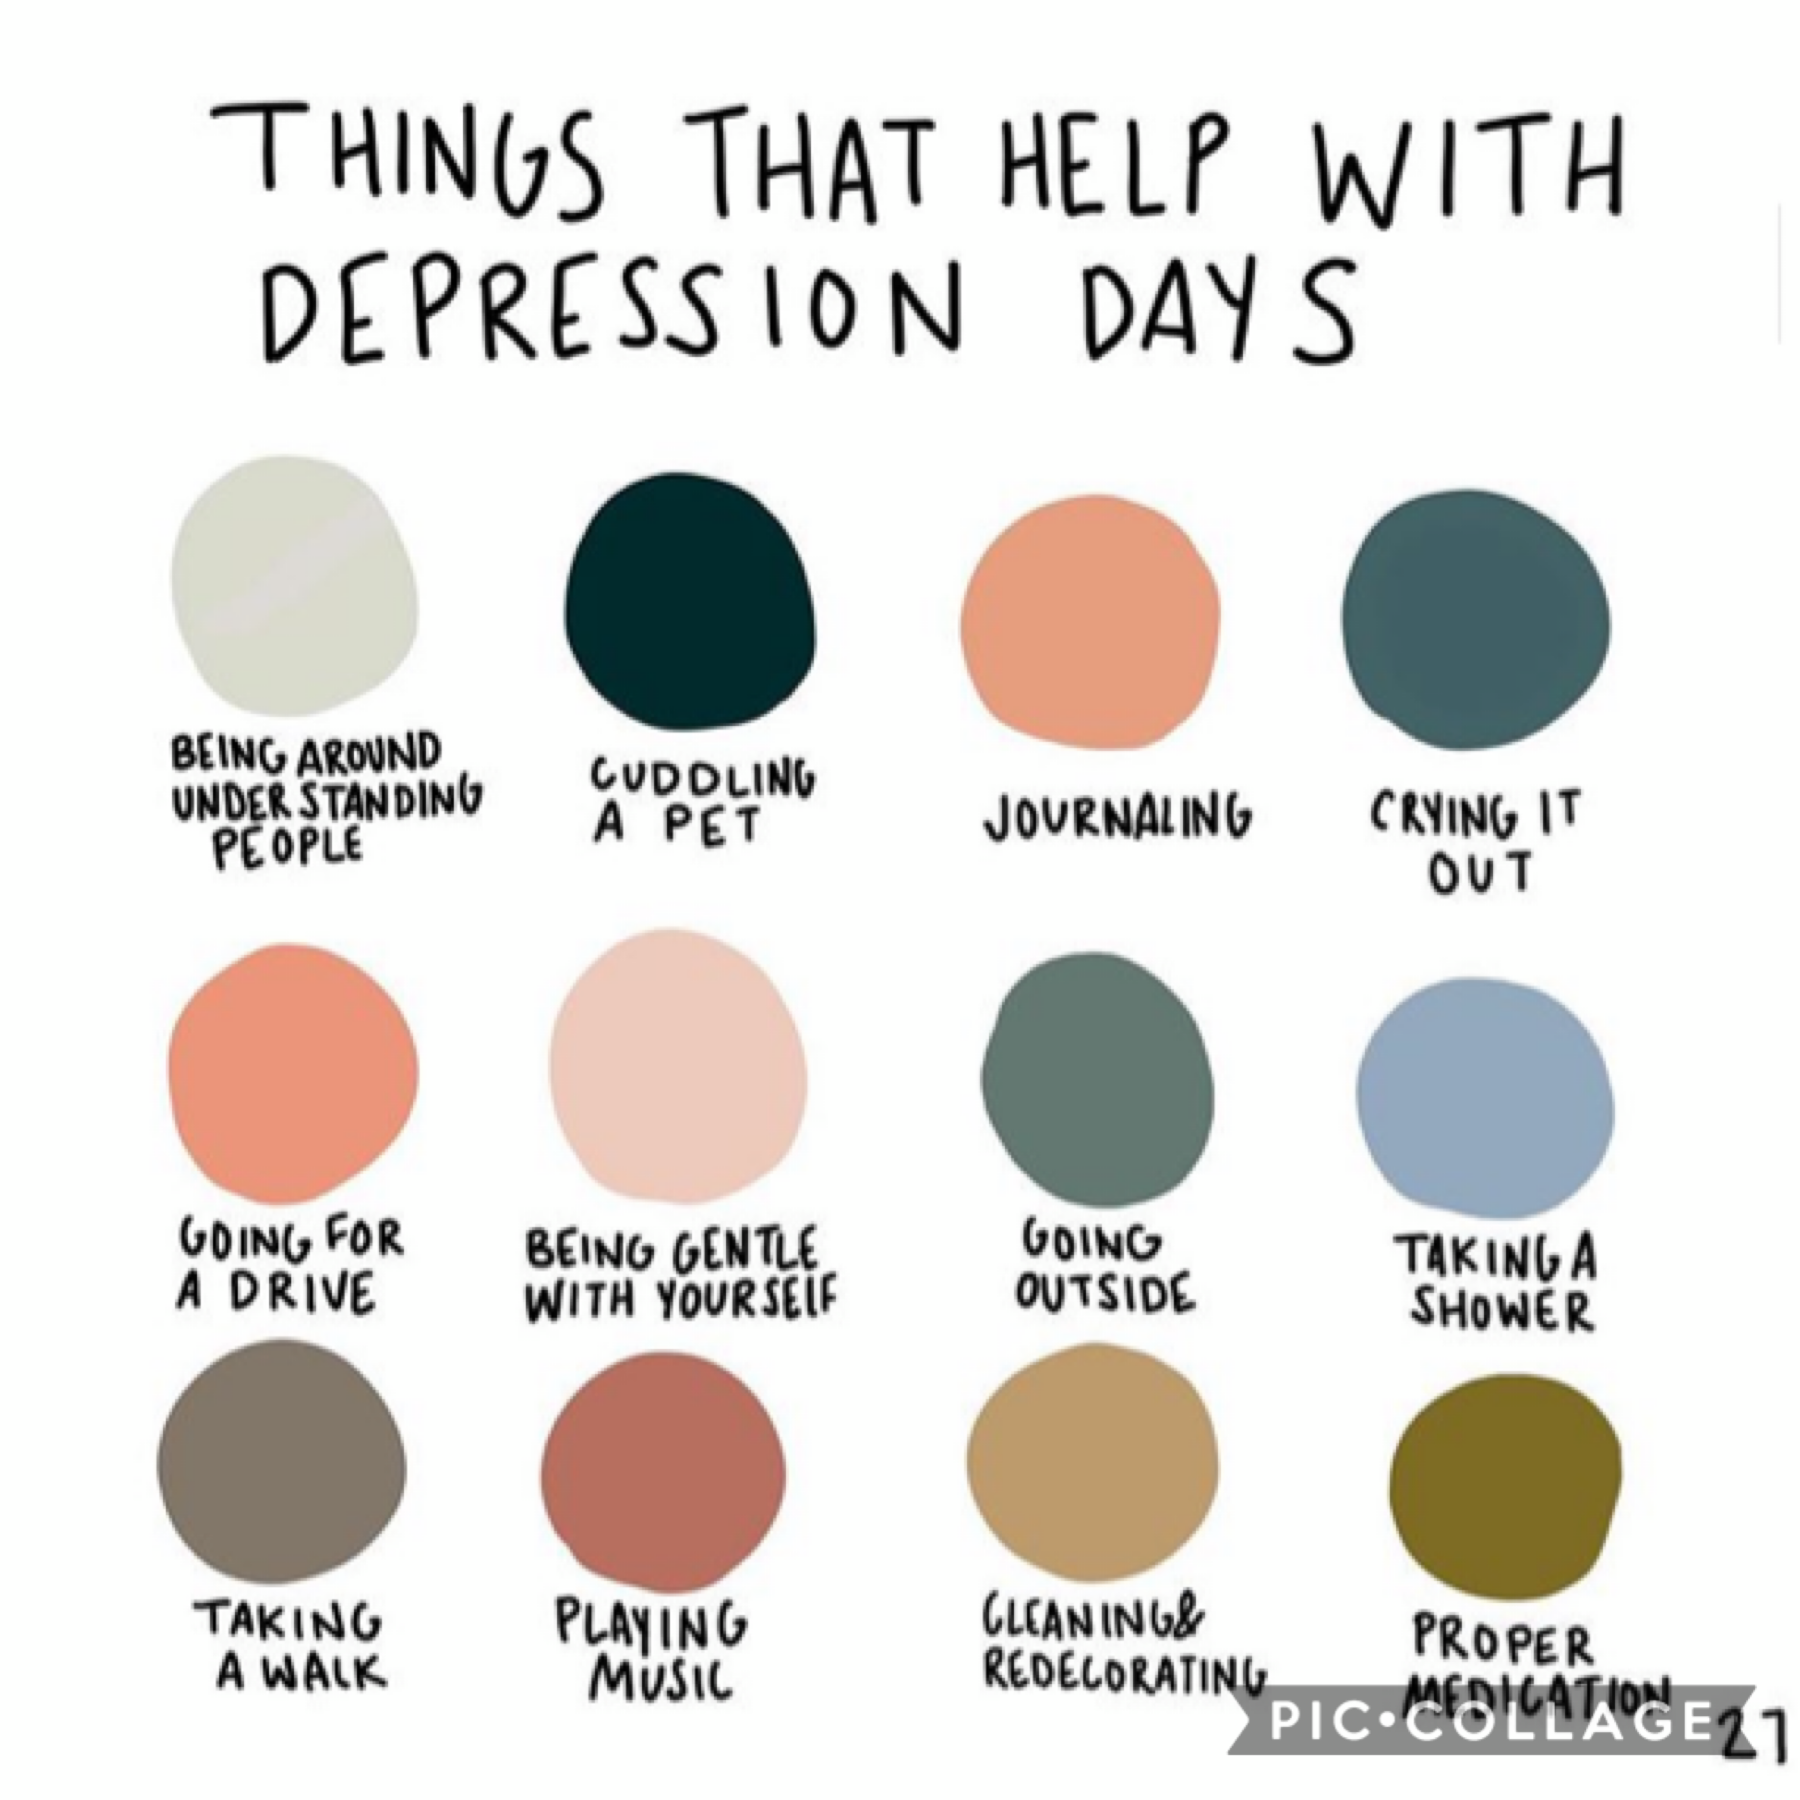 take a mental health day when you can! this something i'm working on, just normal hygiene and self-care. somedays it may be a challenge so take that time to take care of yourself! it's okay to have bad days, just keep going and know that better things are